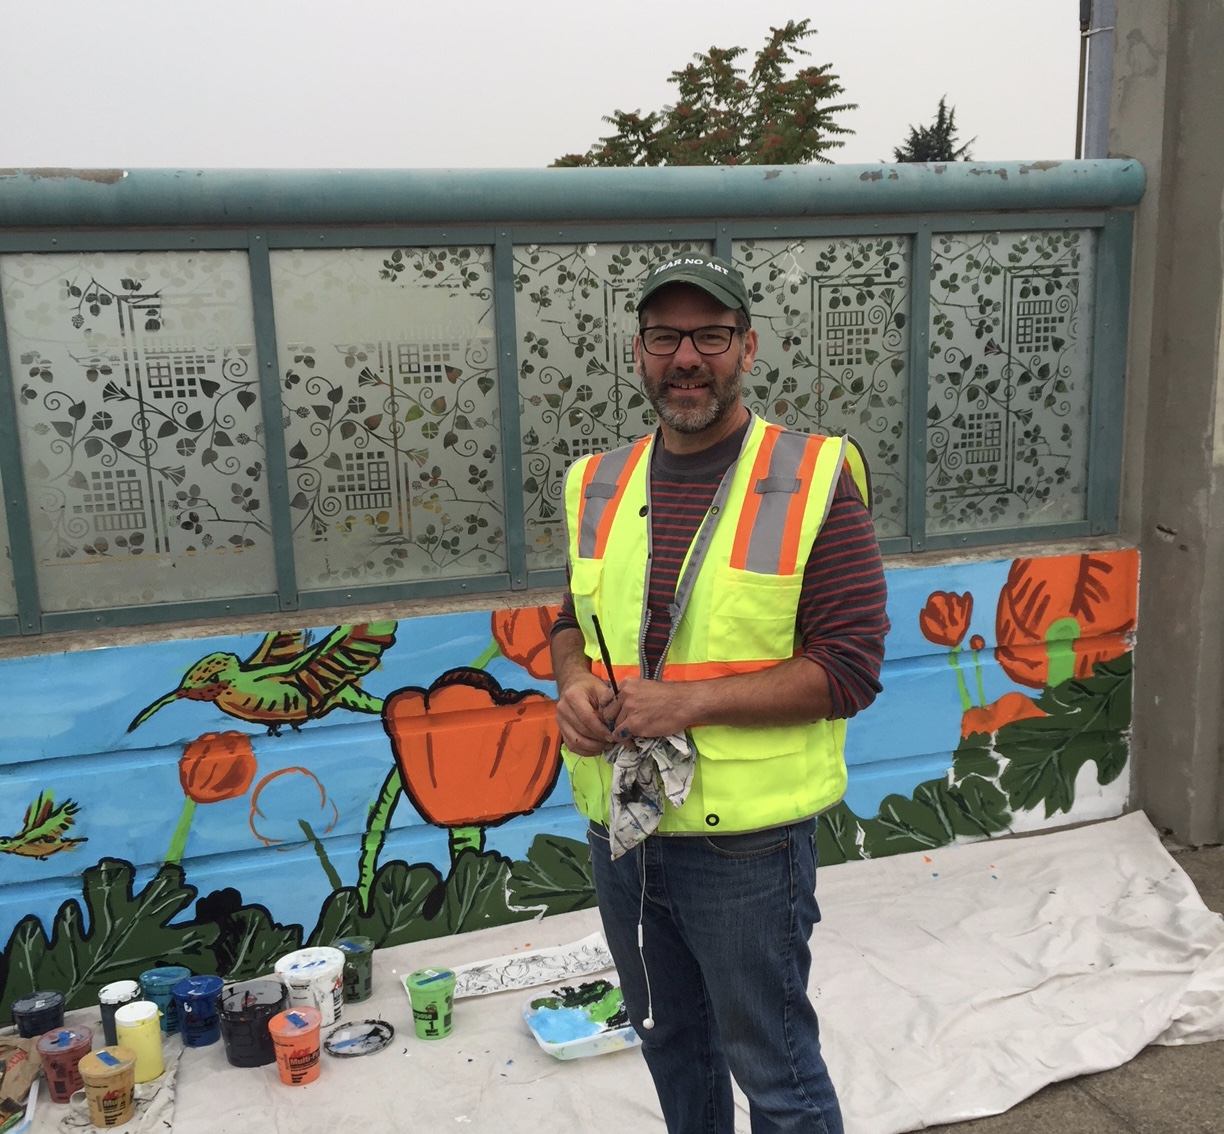 Photo update from 60th MAX station mural